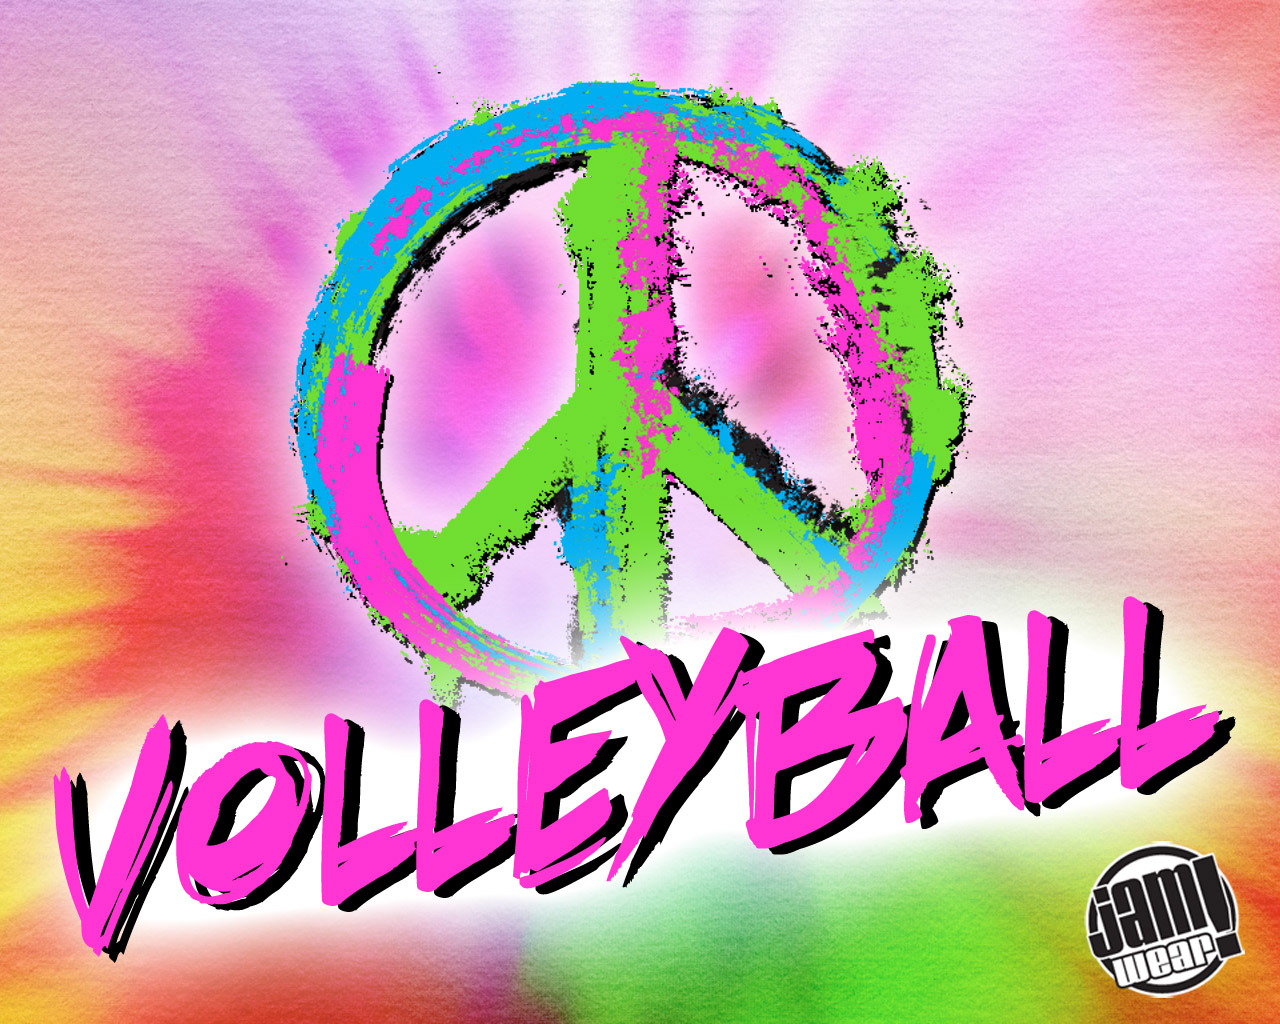 Volleyball Wallpapers: Volley Ball Wallpaper